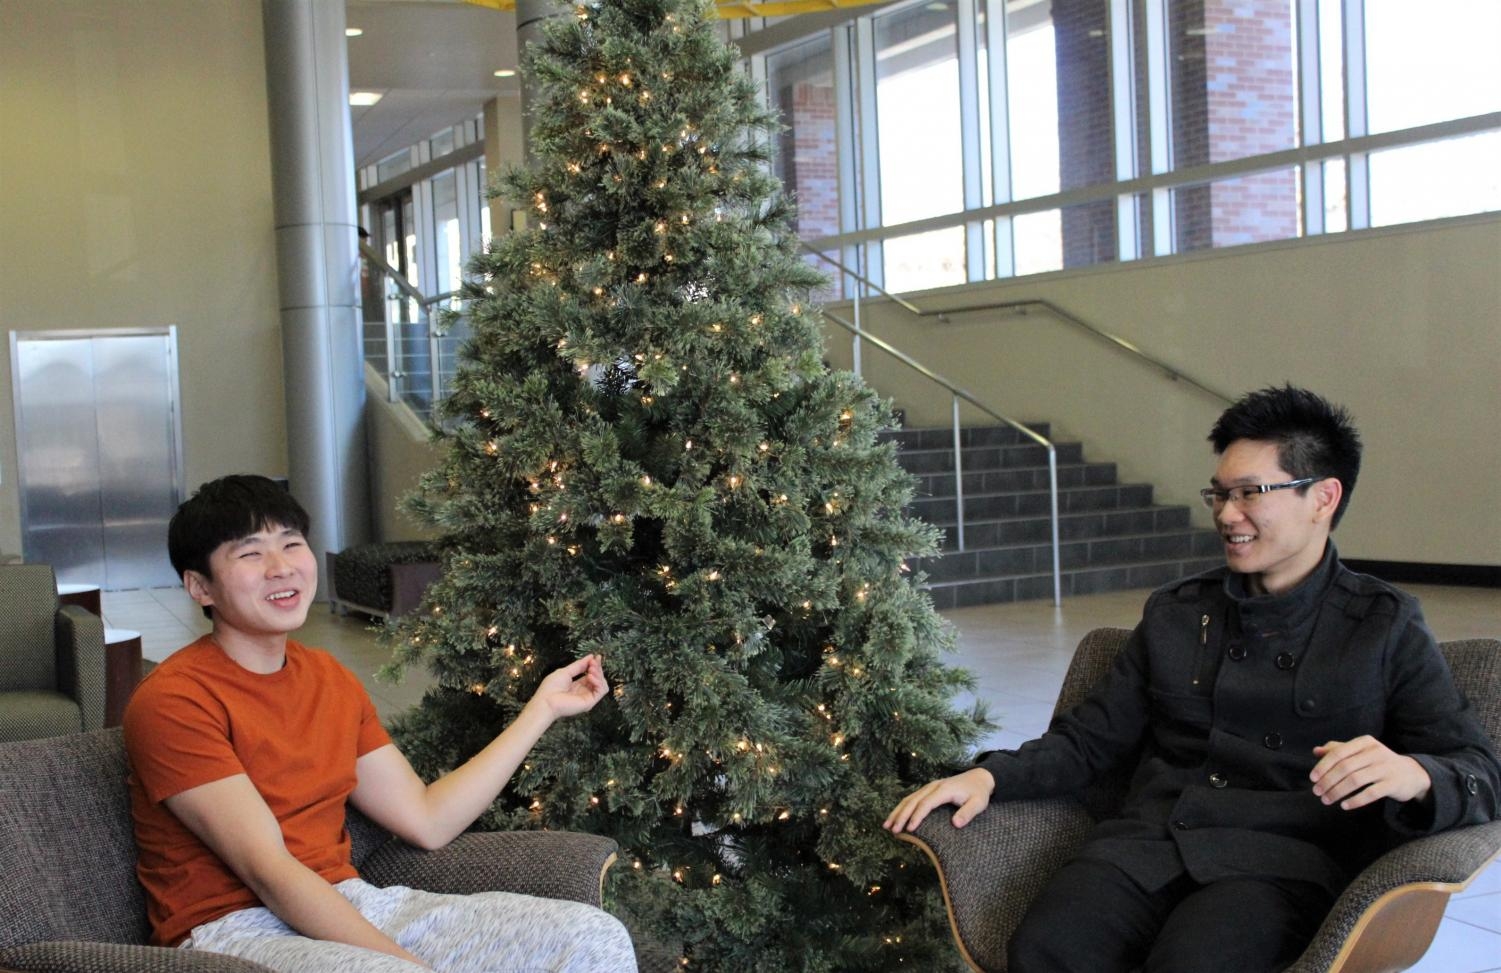 Malaysian international students Jerome Jun Chang Teoh (left) and Christopher Mong En Leong (right) sit in the Rhatigan Student Center. Both are staying on campus over the holidays.